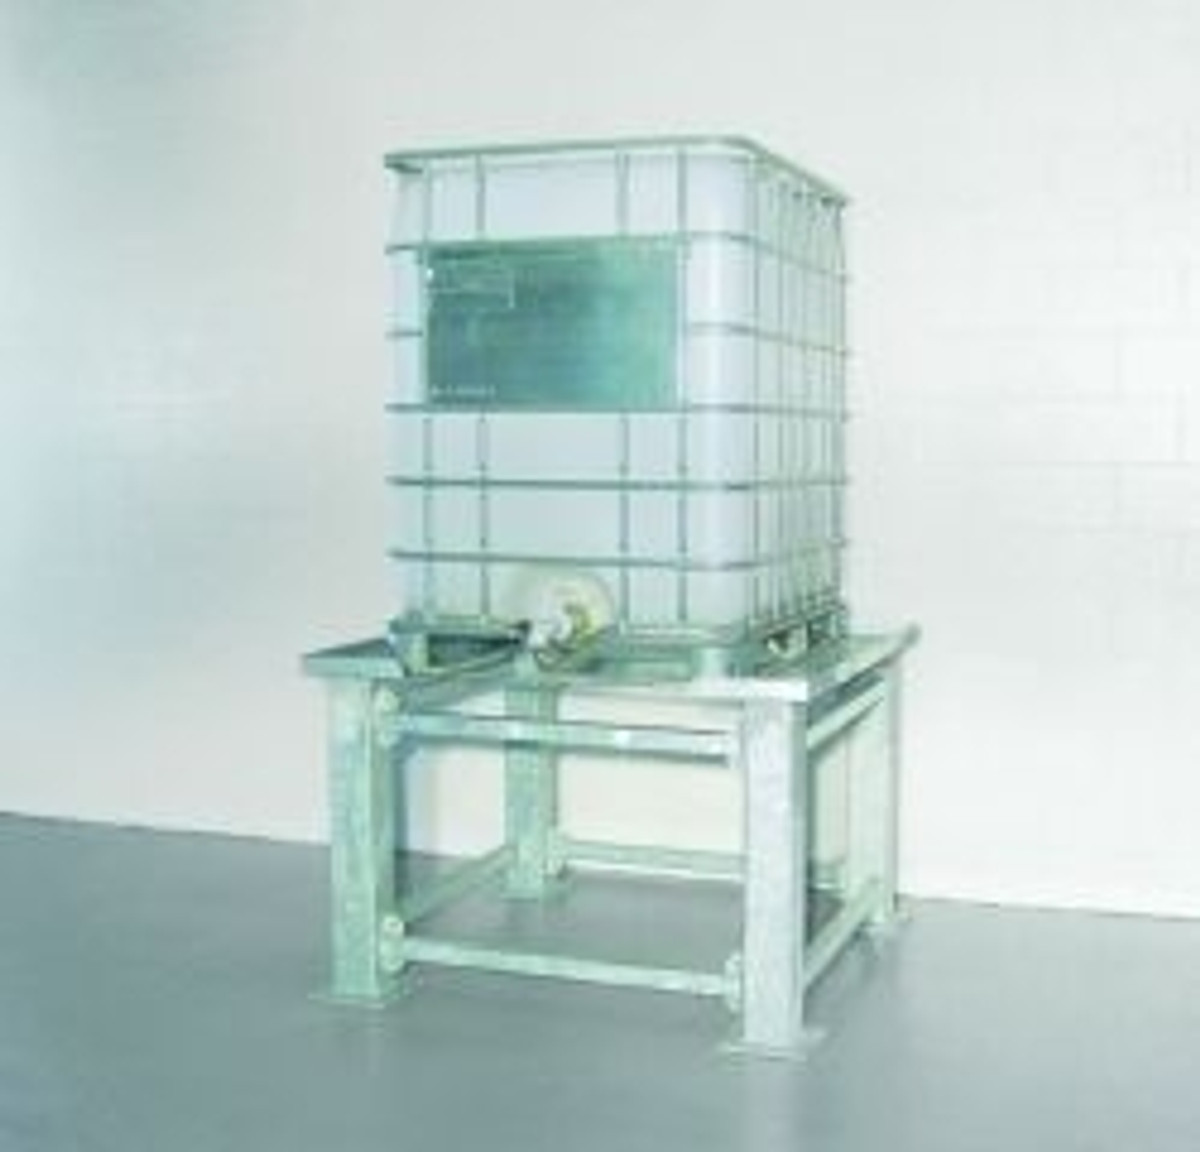 1-Tote IBC Containment Stand, Steel